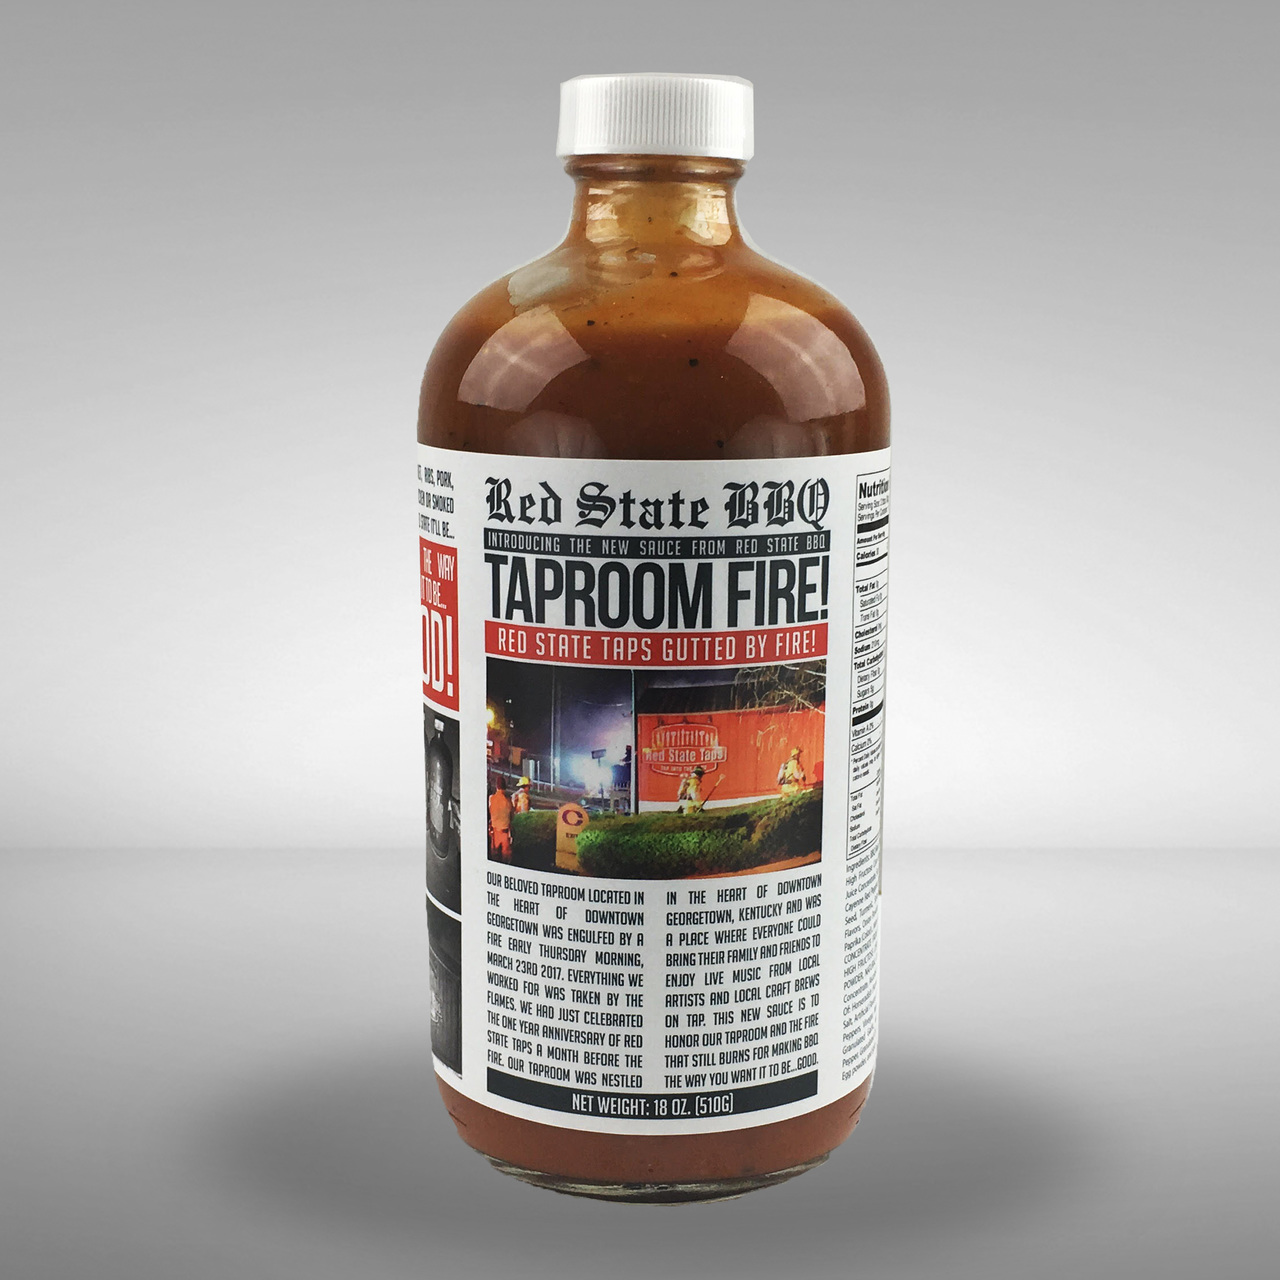 Taproom Fire Sauce